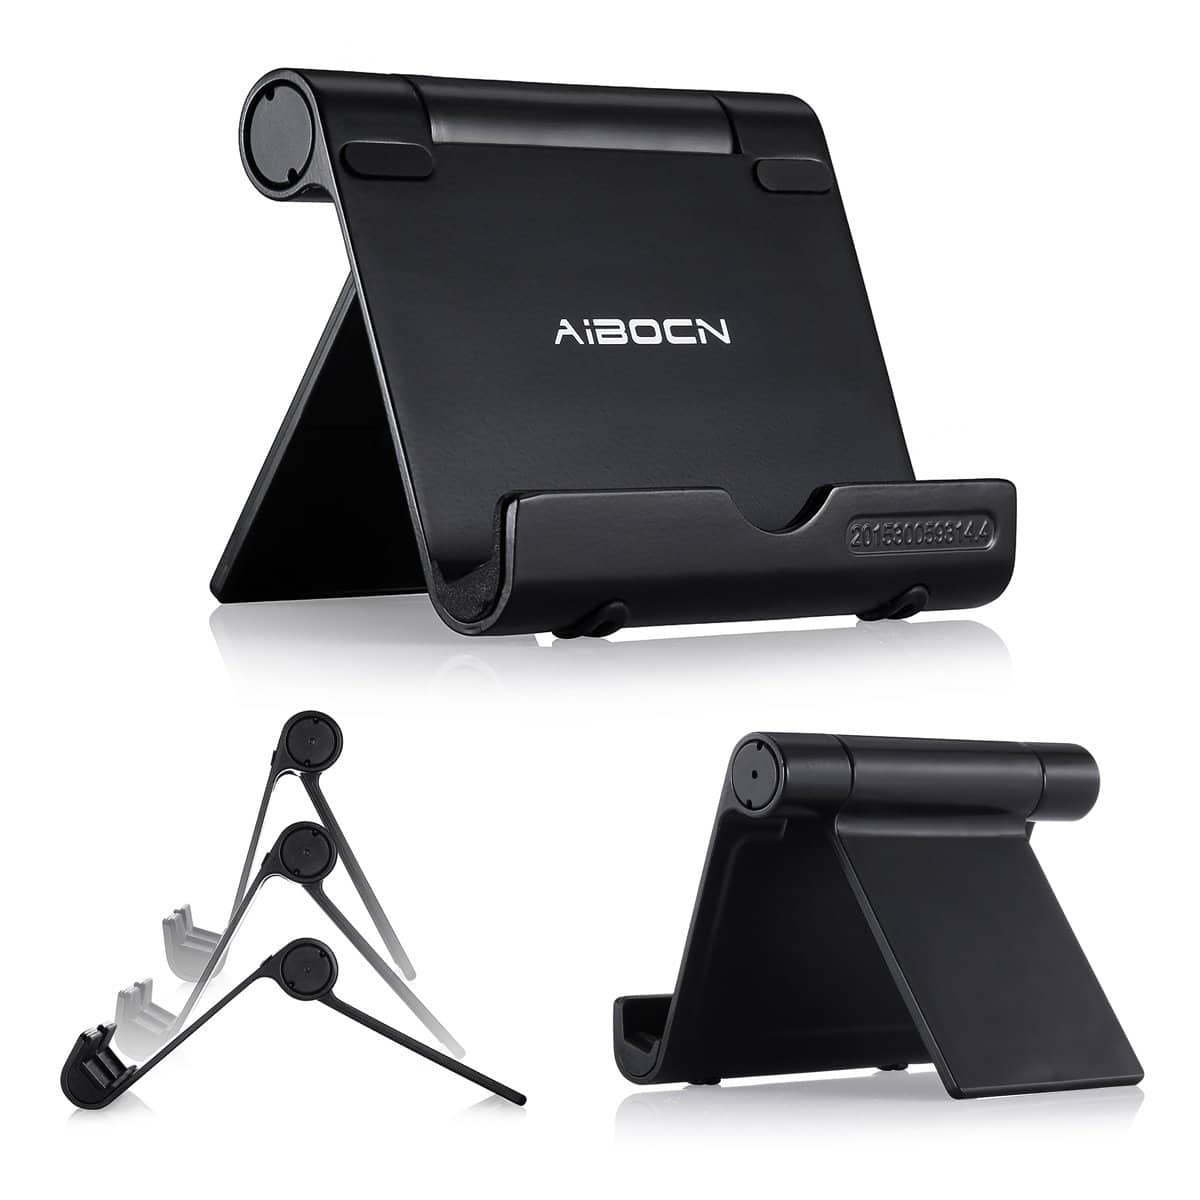 Aibocn Upgraded Multi-Angle Aluminum Stand for Tablets Smartphones and E-readers Compatible (Black) $6.59